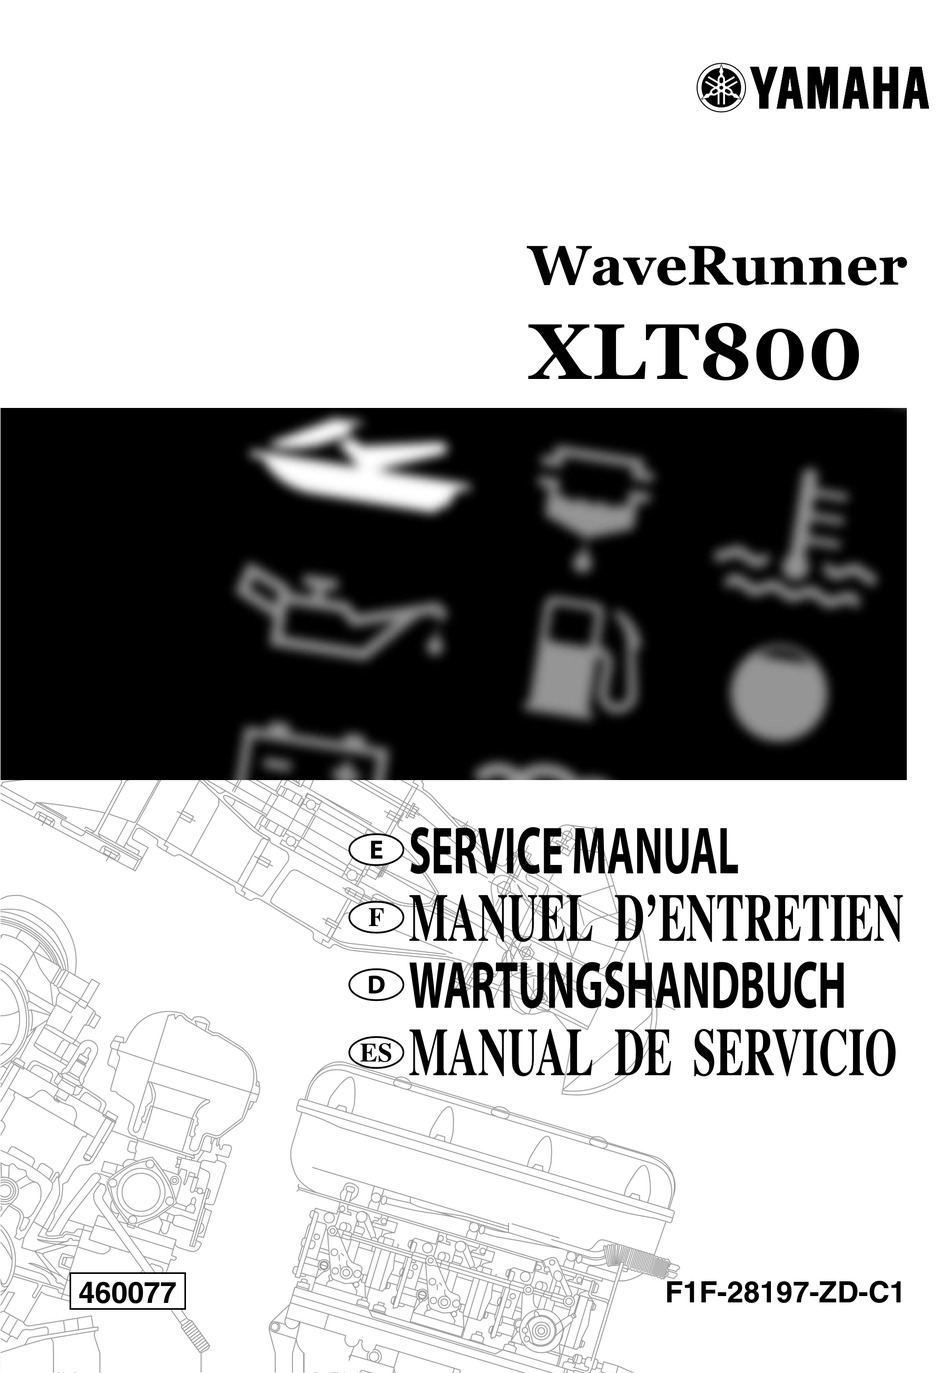 Yamaha Waverunner Xlt800 Service Manual Pdf Download Manualslib